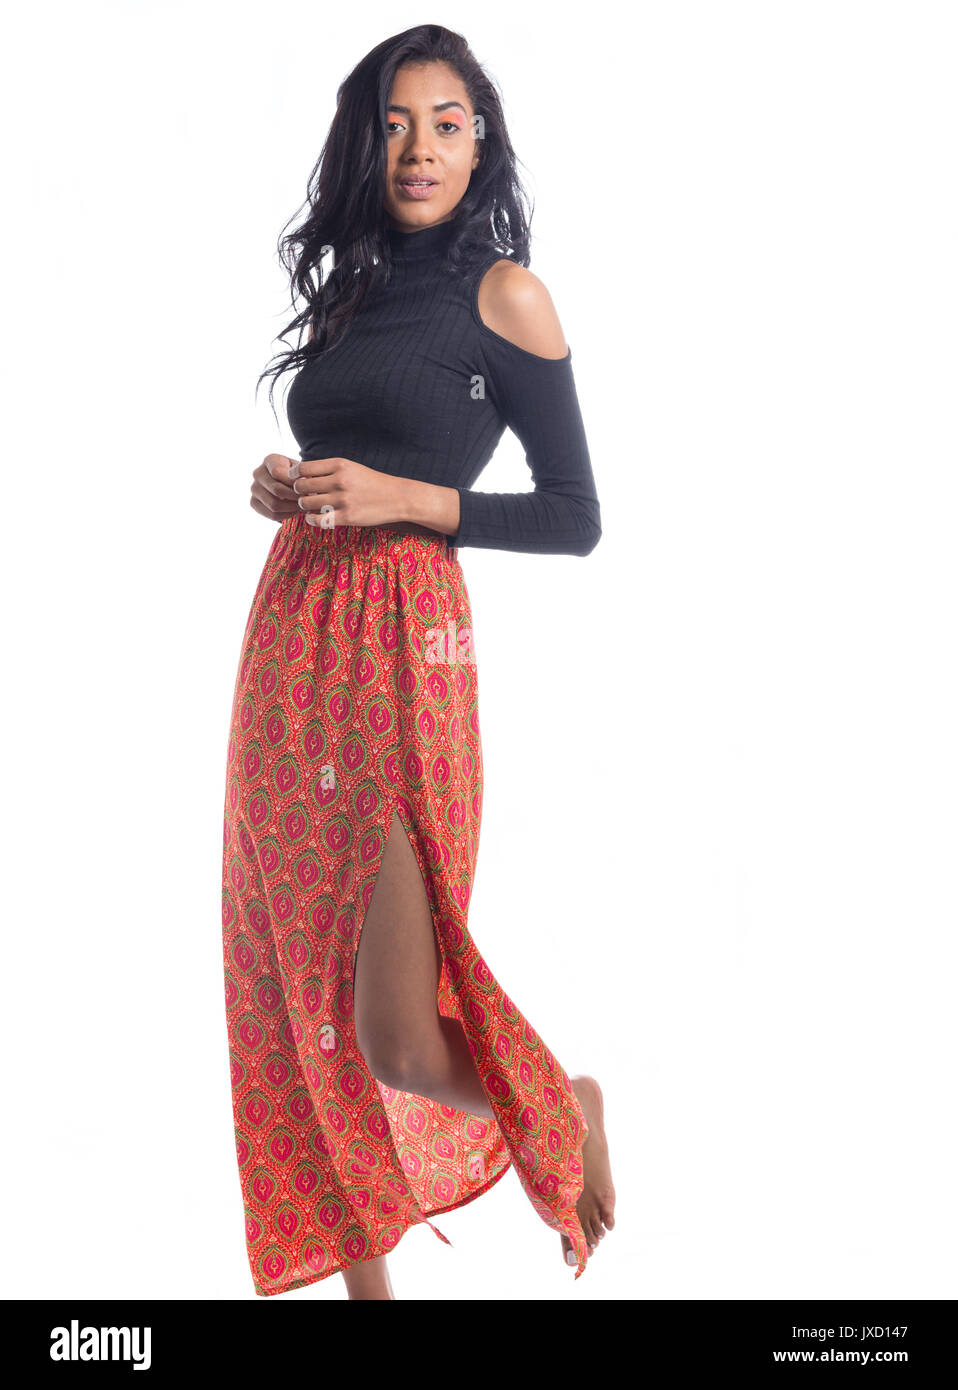 Pretty woman moving with grace. She is beautiful. Full length body of brazilian girl, mixed ethnicity, wearing black top and long orange skirt. Standi - Stock Image